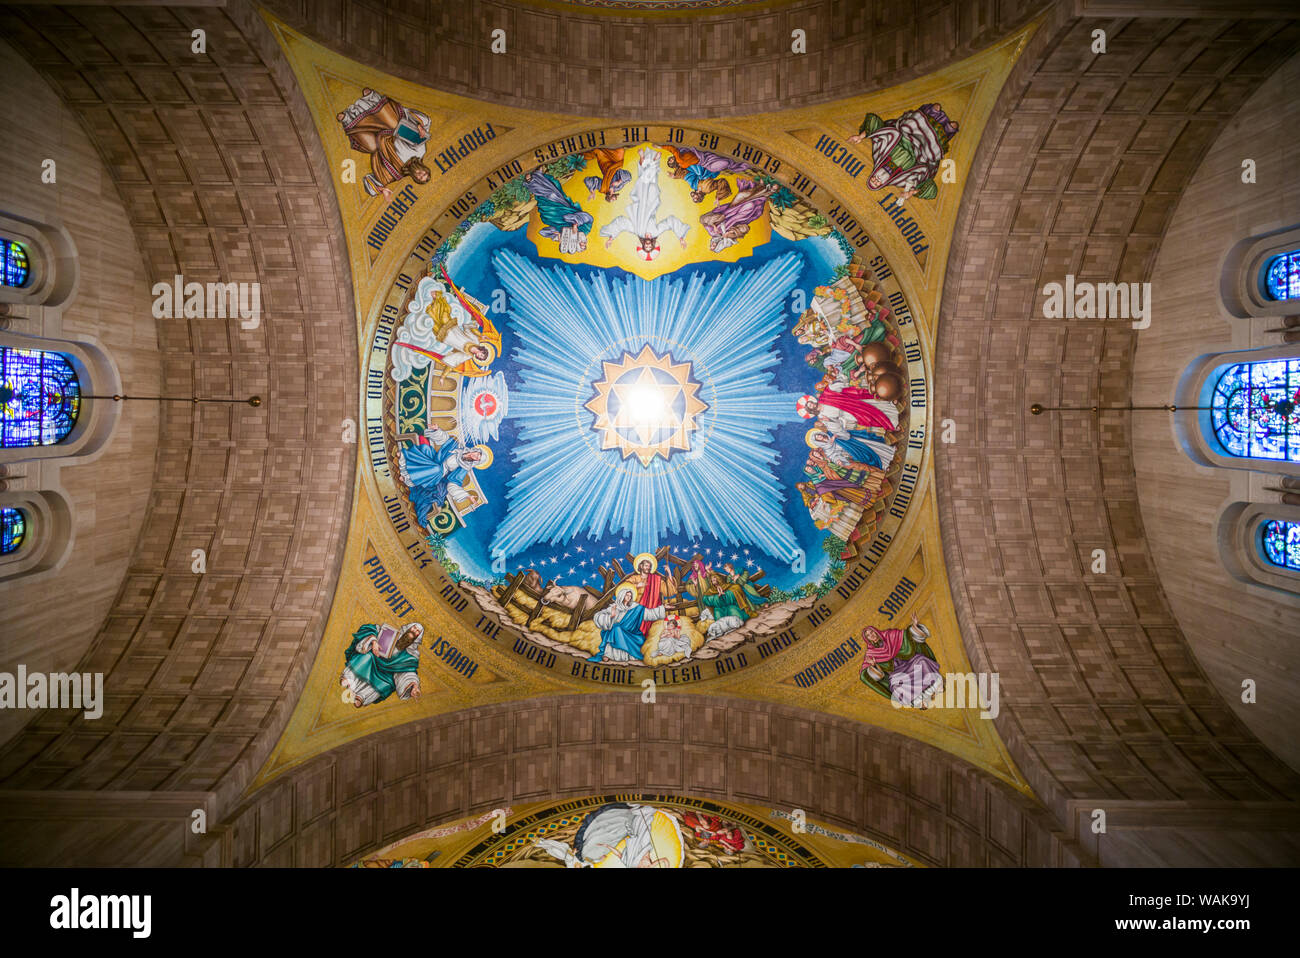 USA, Washington D.C. Basilica of the National Shrine of the Immaculate Conception ceiling Stock Photo